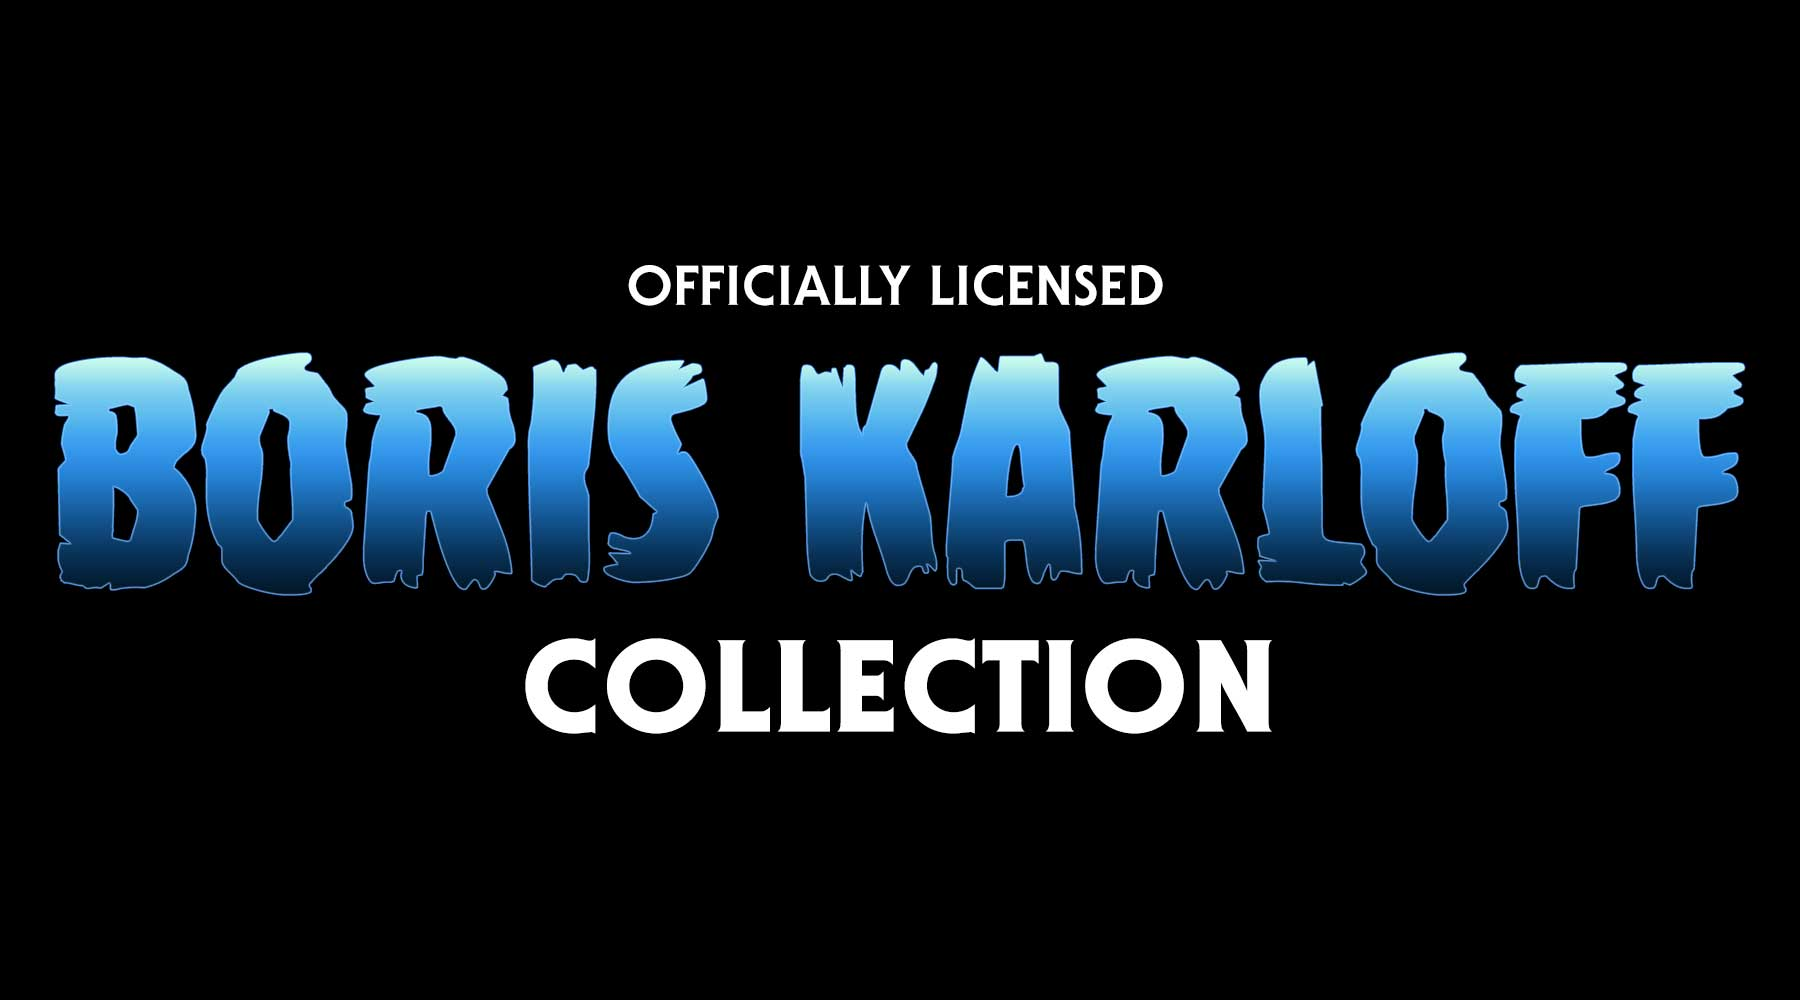 Officially Licensed Boris Karloff Collection